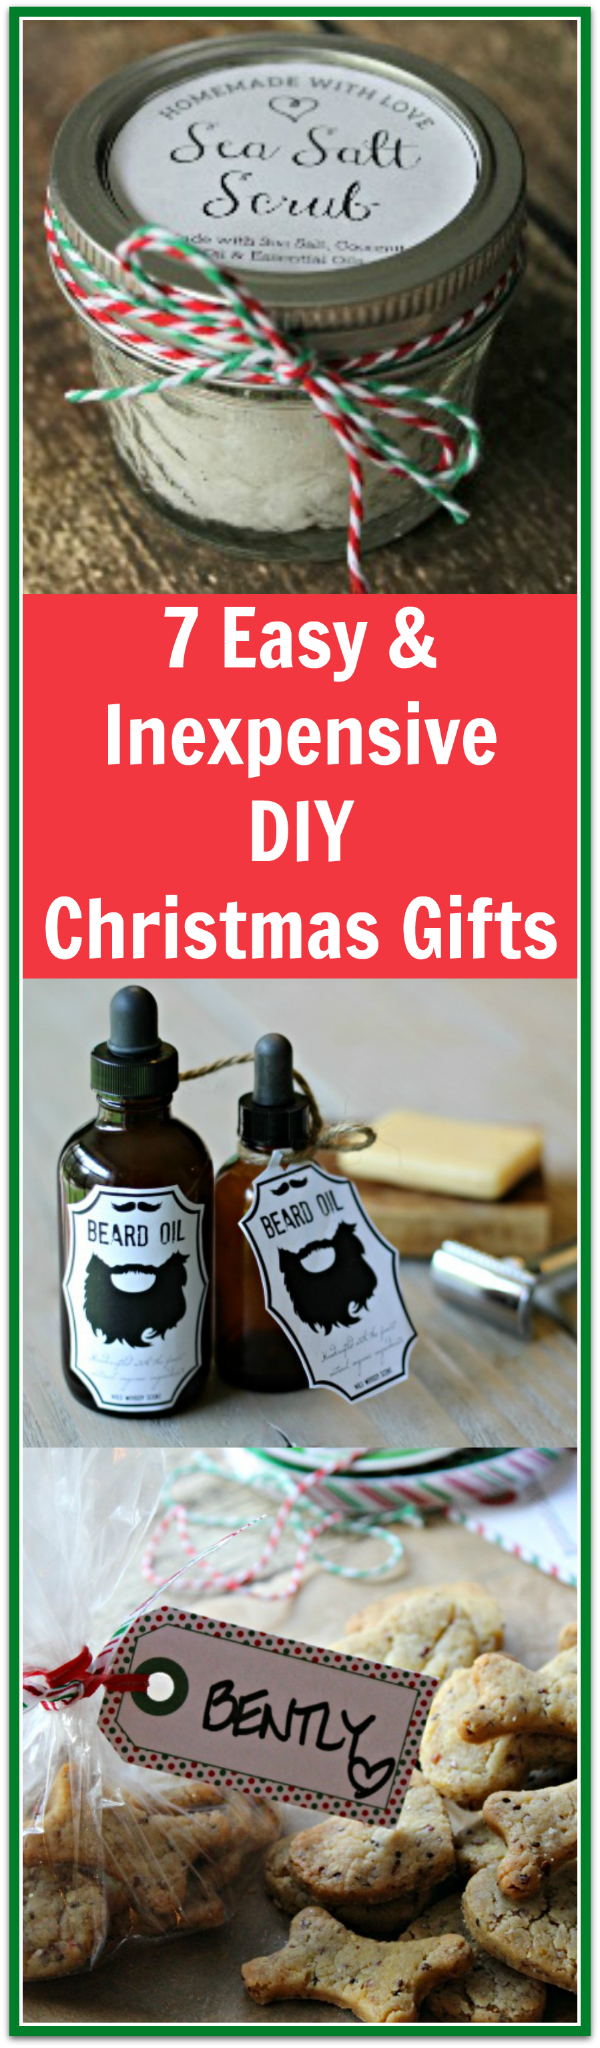 I love these simple but really nice diy christmas gift ideas!